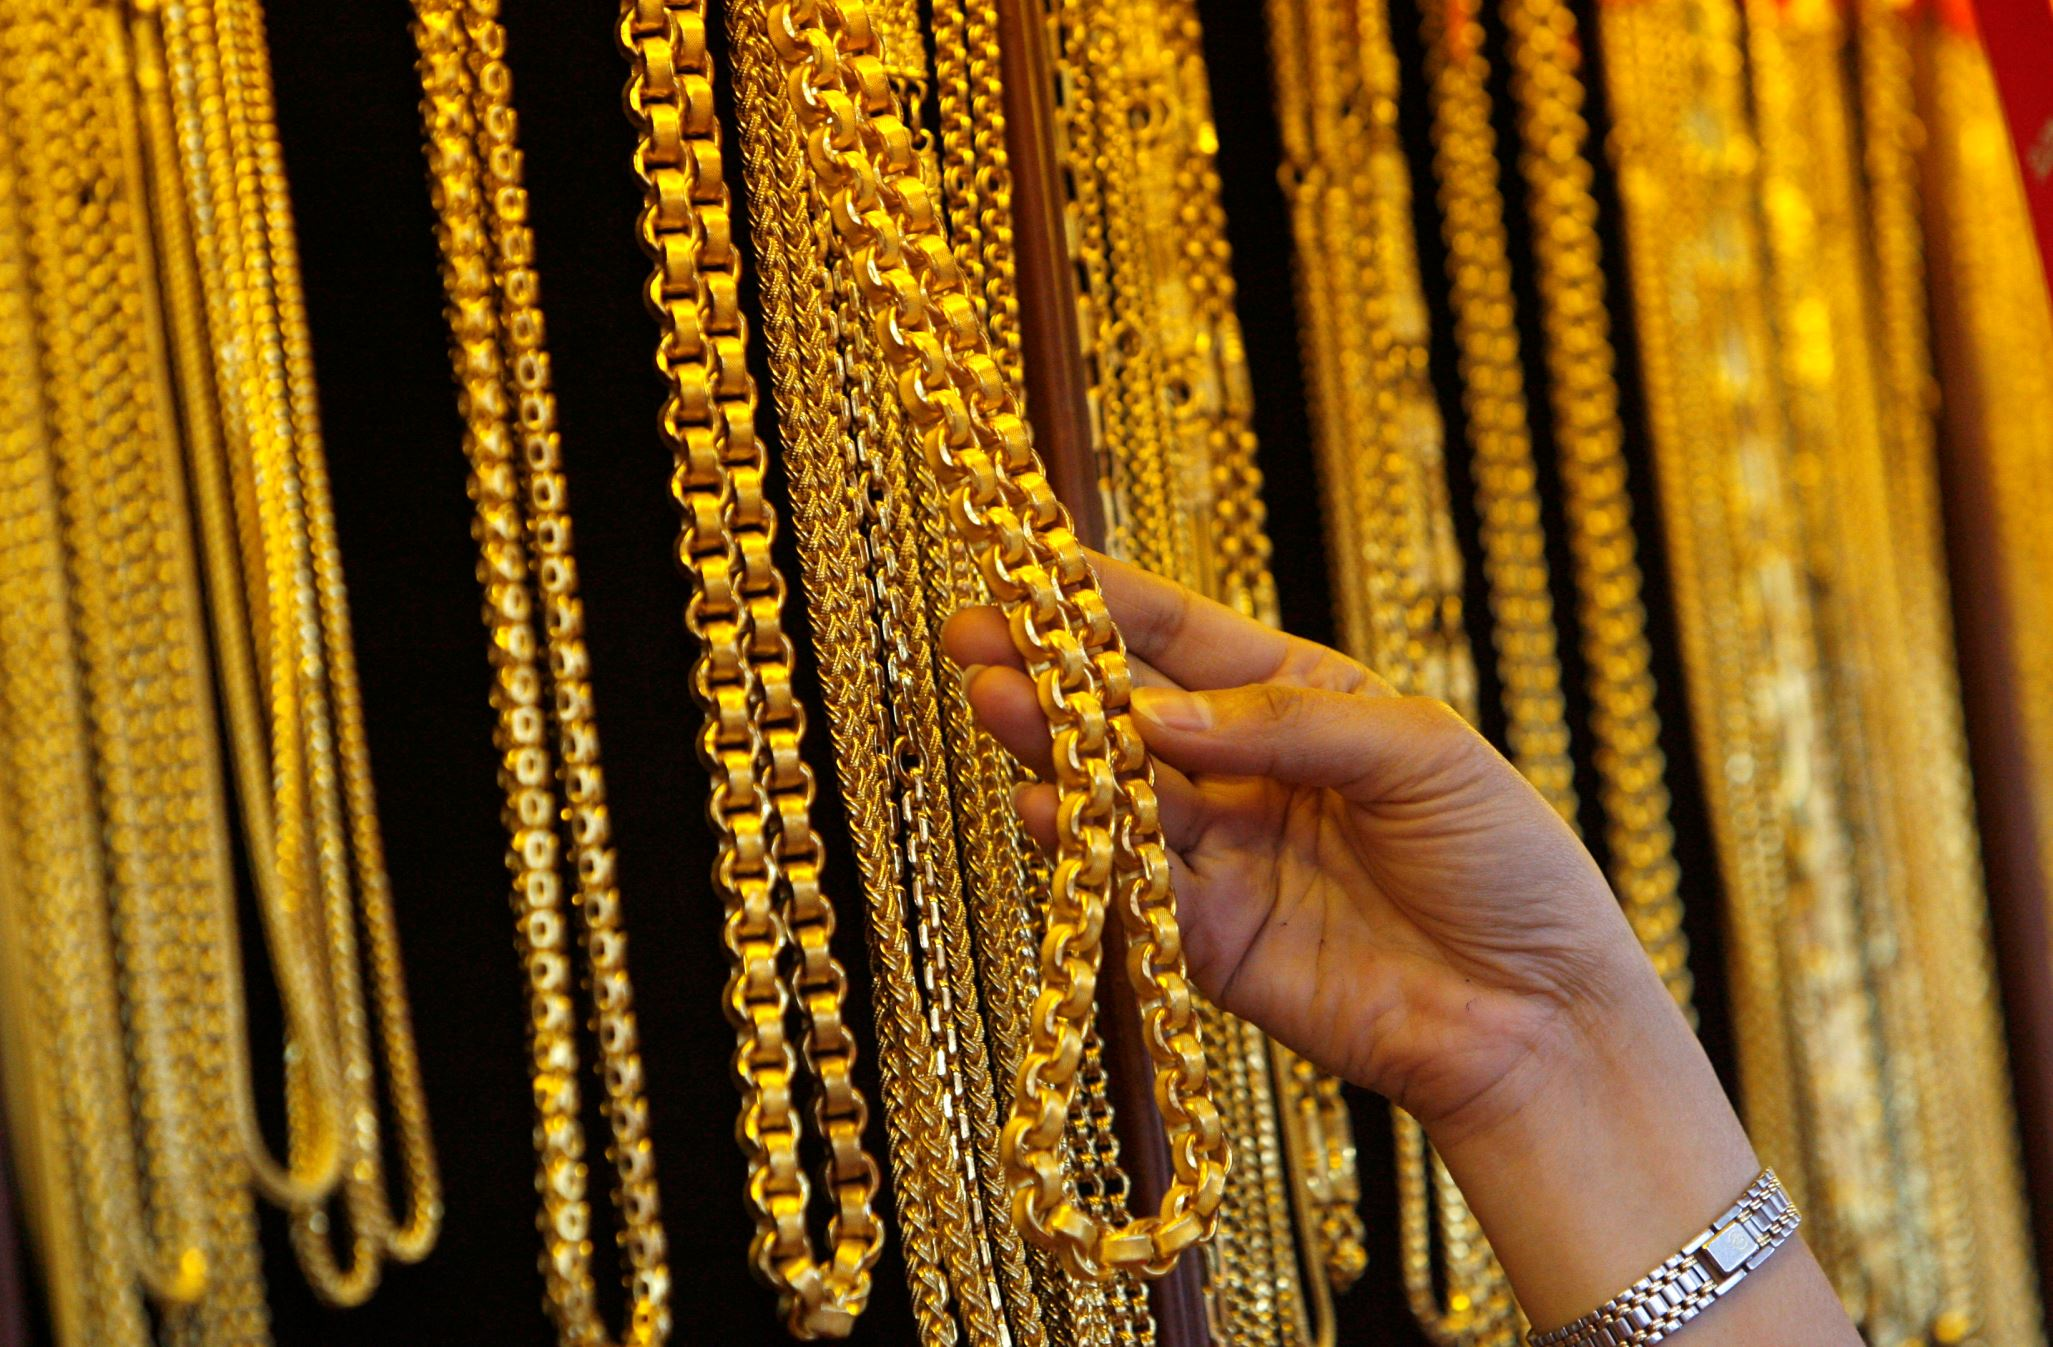 Shopkeeper inspecting gold jewelry.